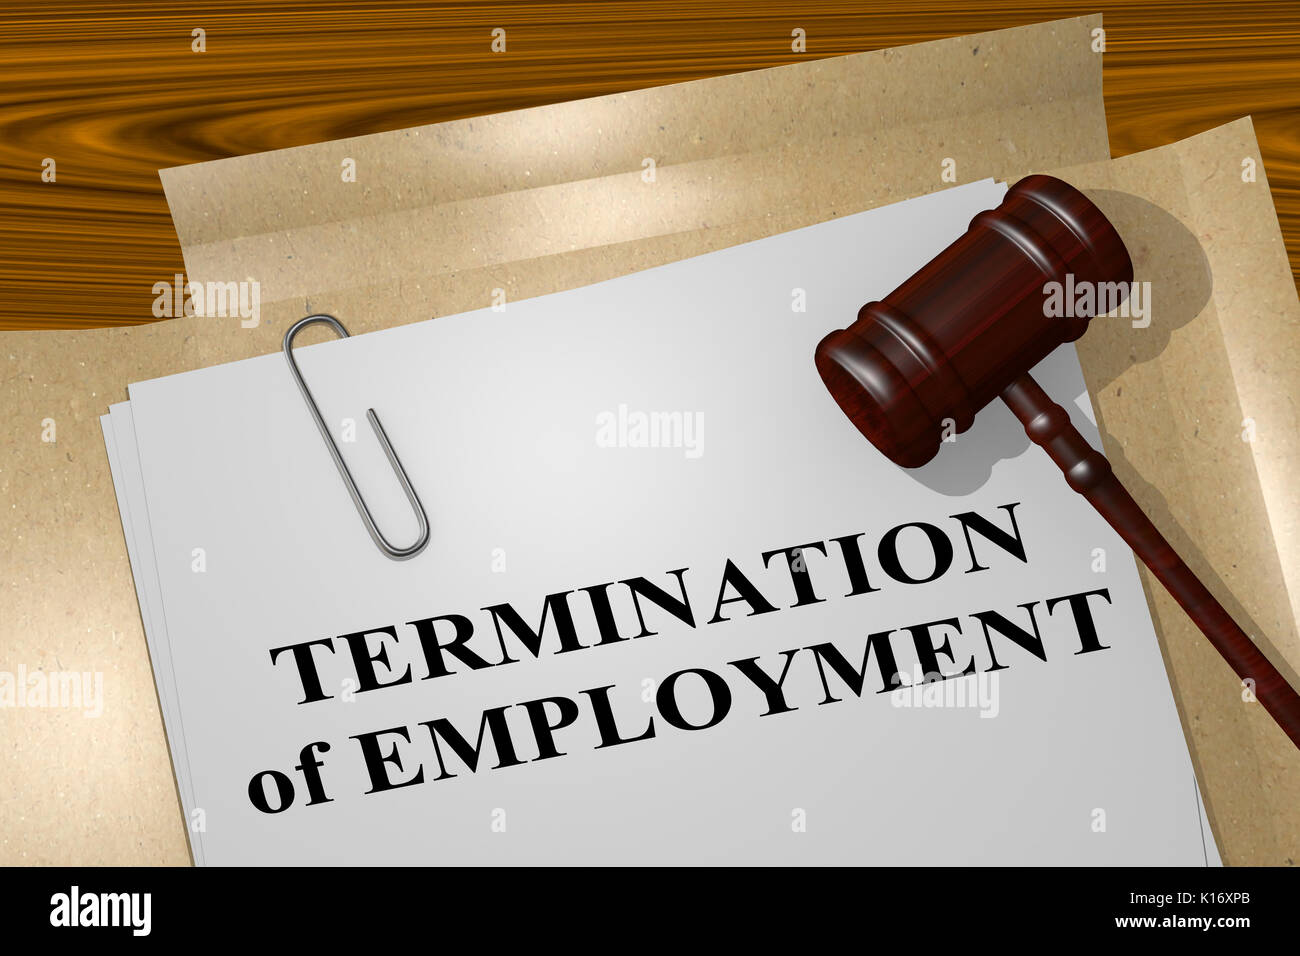 3D illustration of 'TERMINATION of EMPLOYMENT' title on legal document - Stock Image